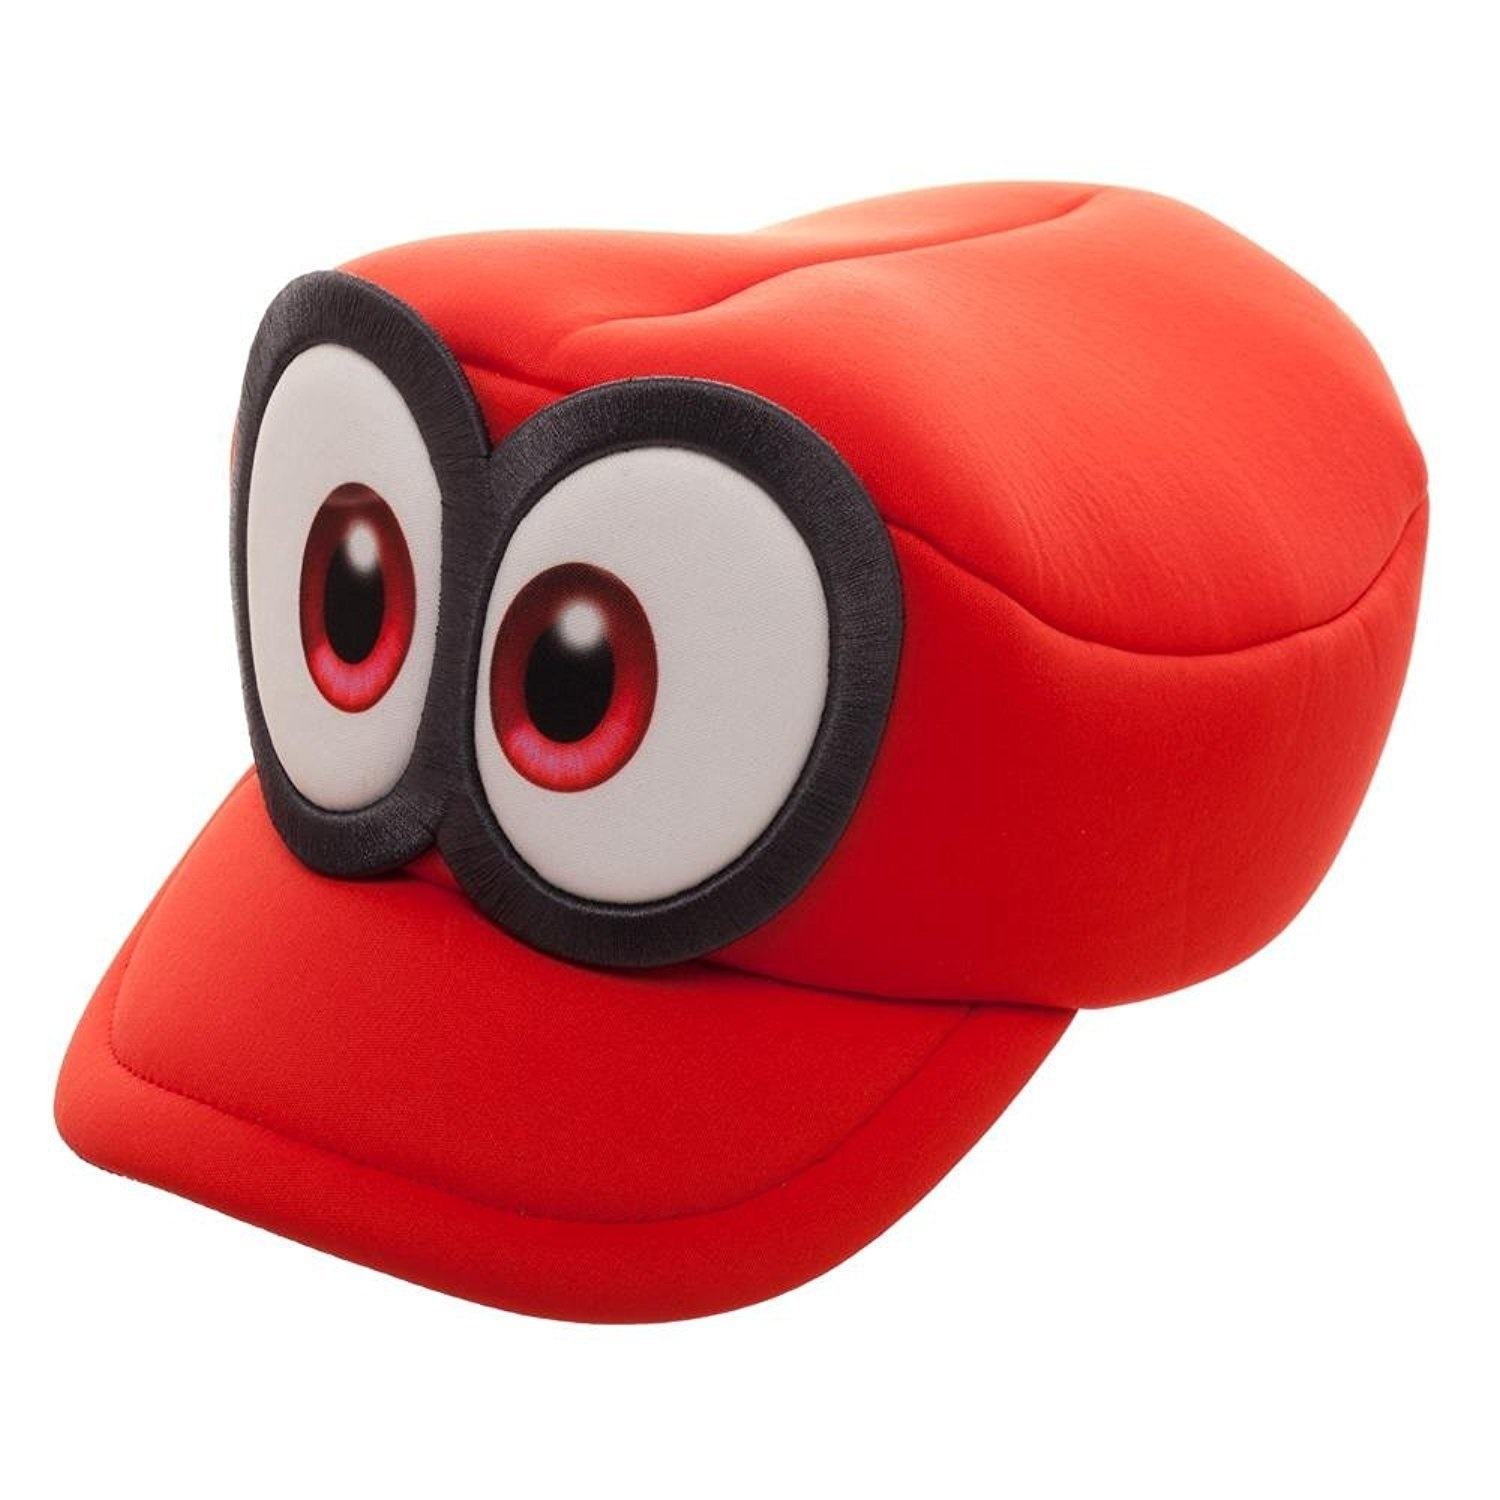 5a52b85bb792c Mario Odyssey - Cappy Cosplay Hat image ...